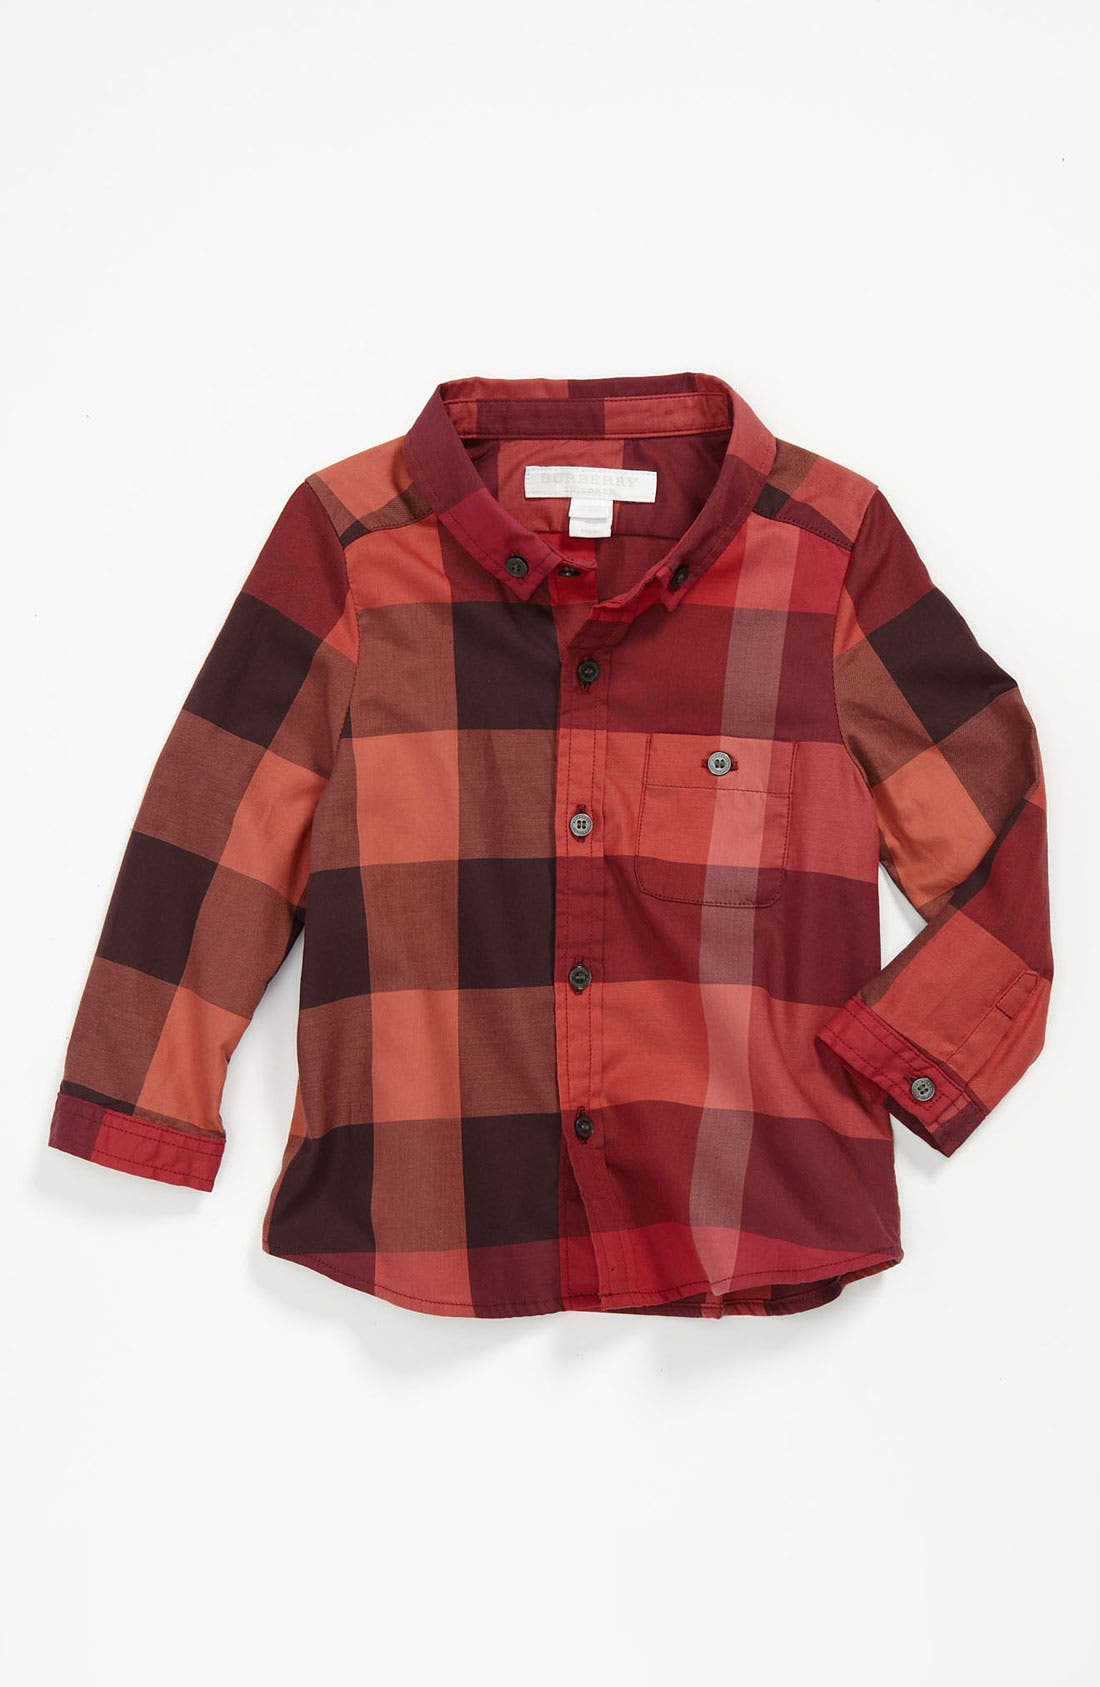 Alternate Image 1 Selected - Burberry 'Trauls' Woven Shirt (Infant)